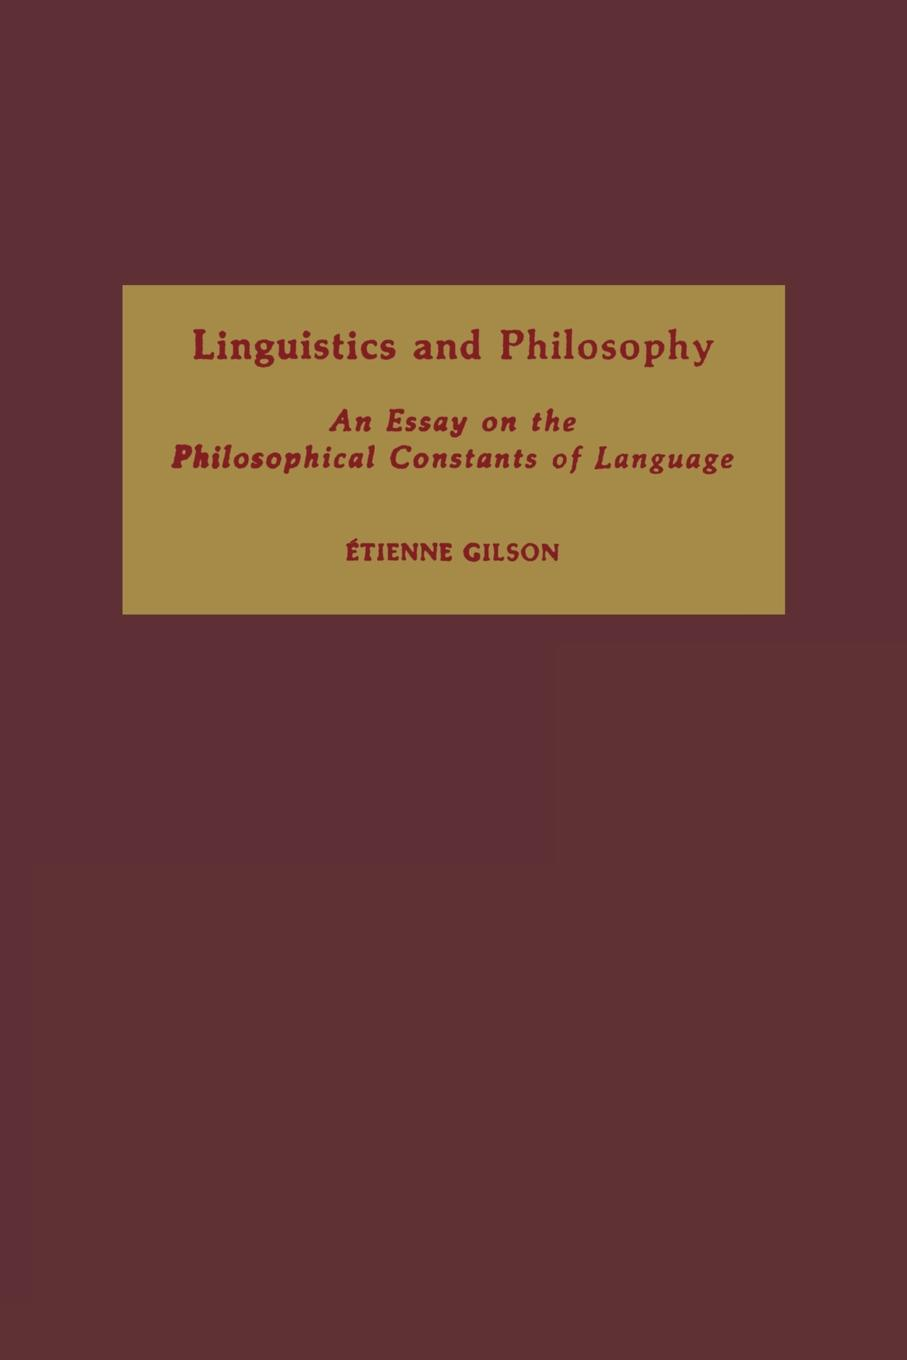 william irwin ender s game and philosophy the logic gate is down Etienne Gilson, John Lyon Linguistics and Philosophy. An Essay on the Philosophical Constants of Language